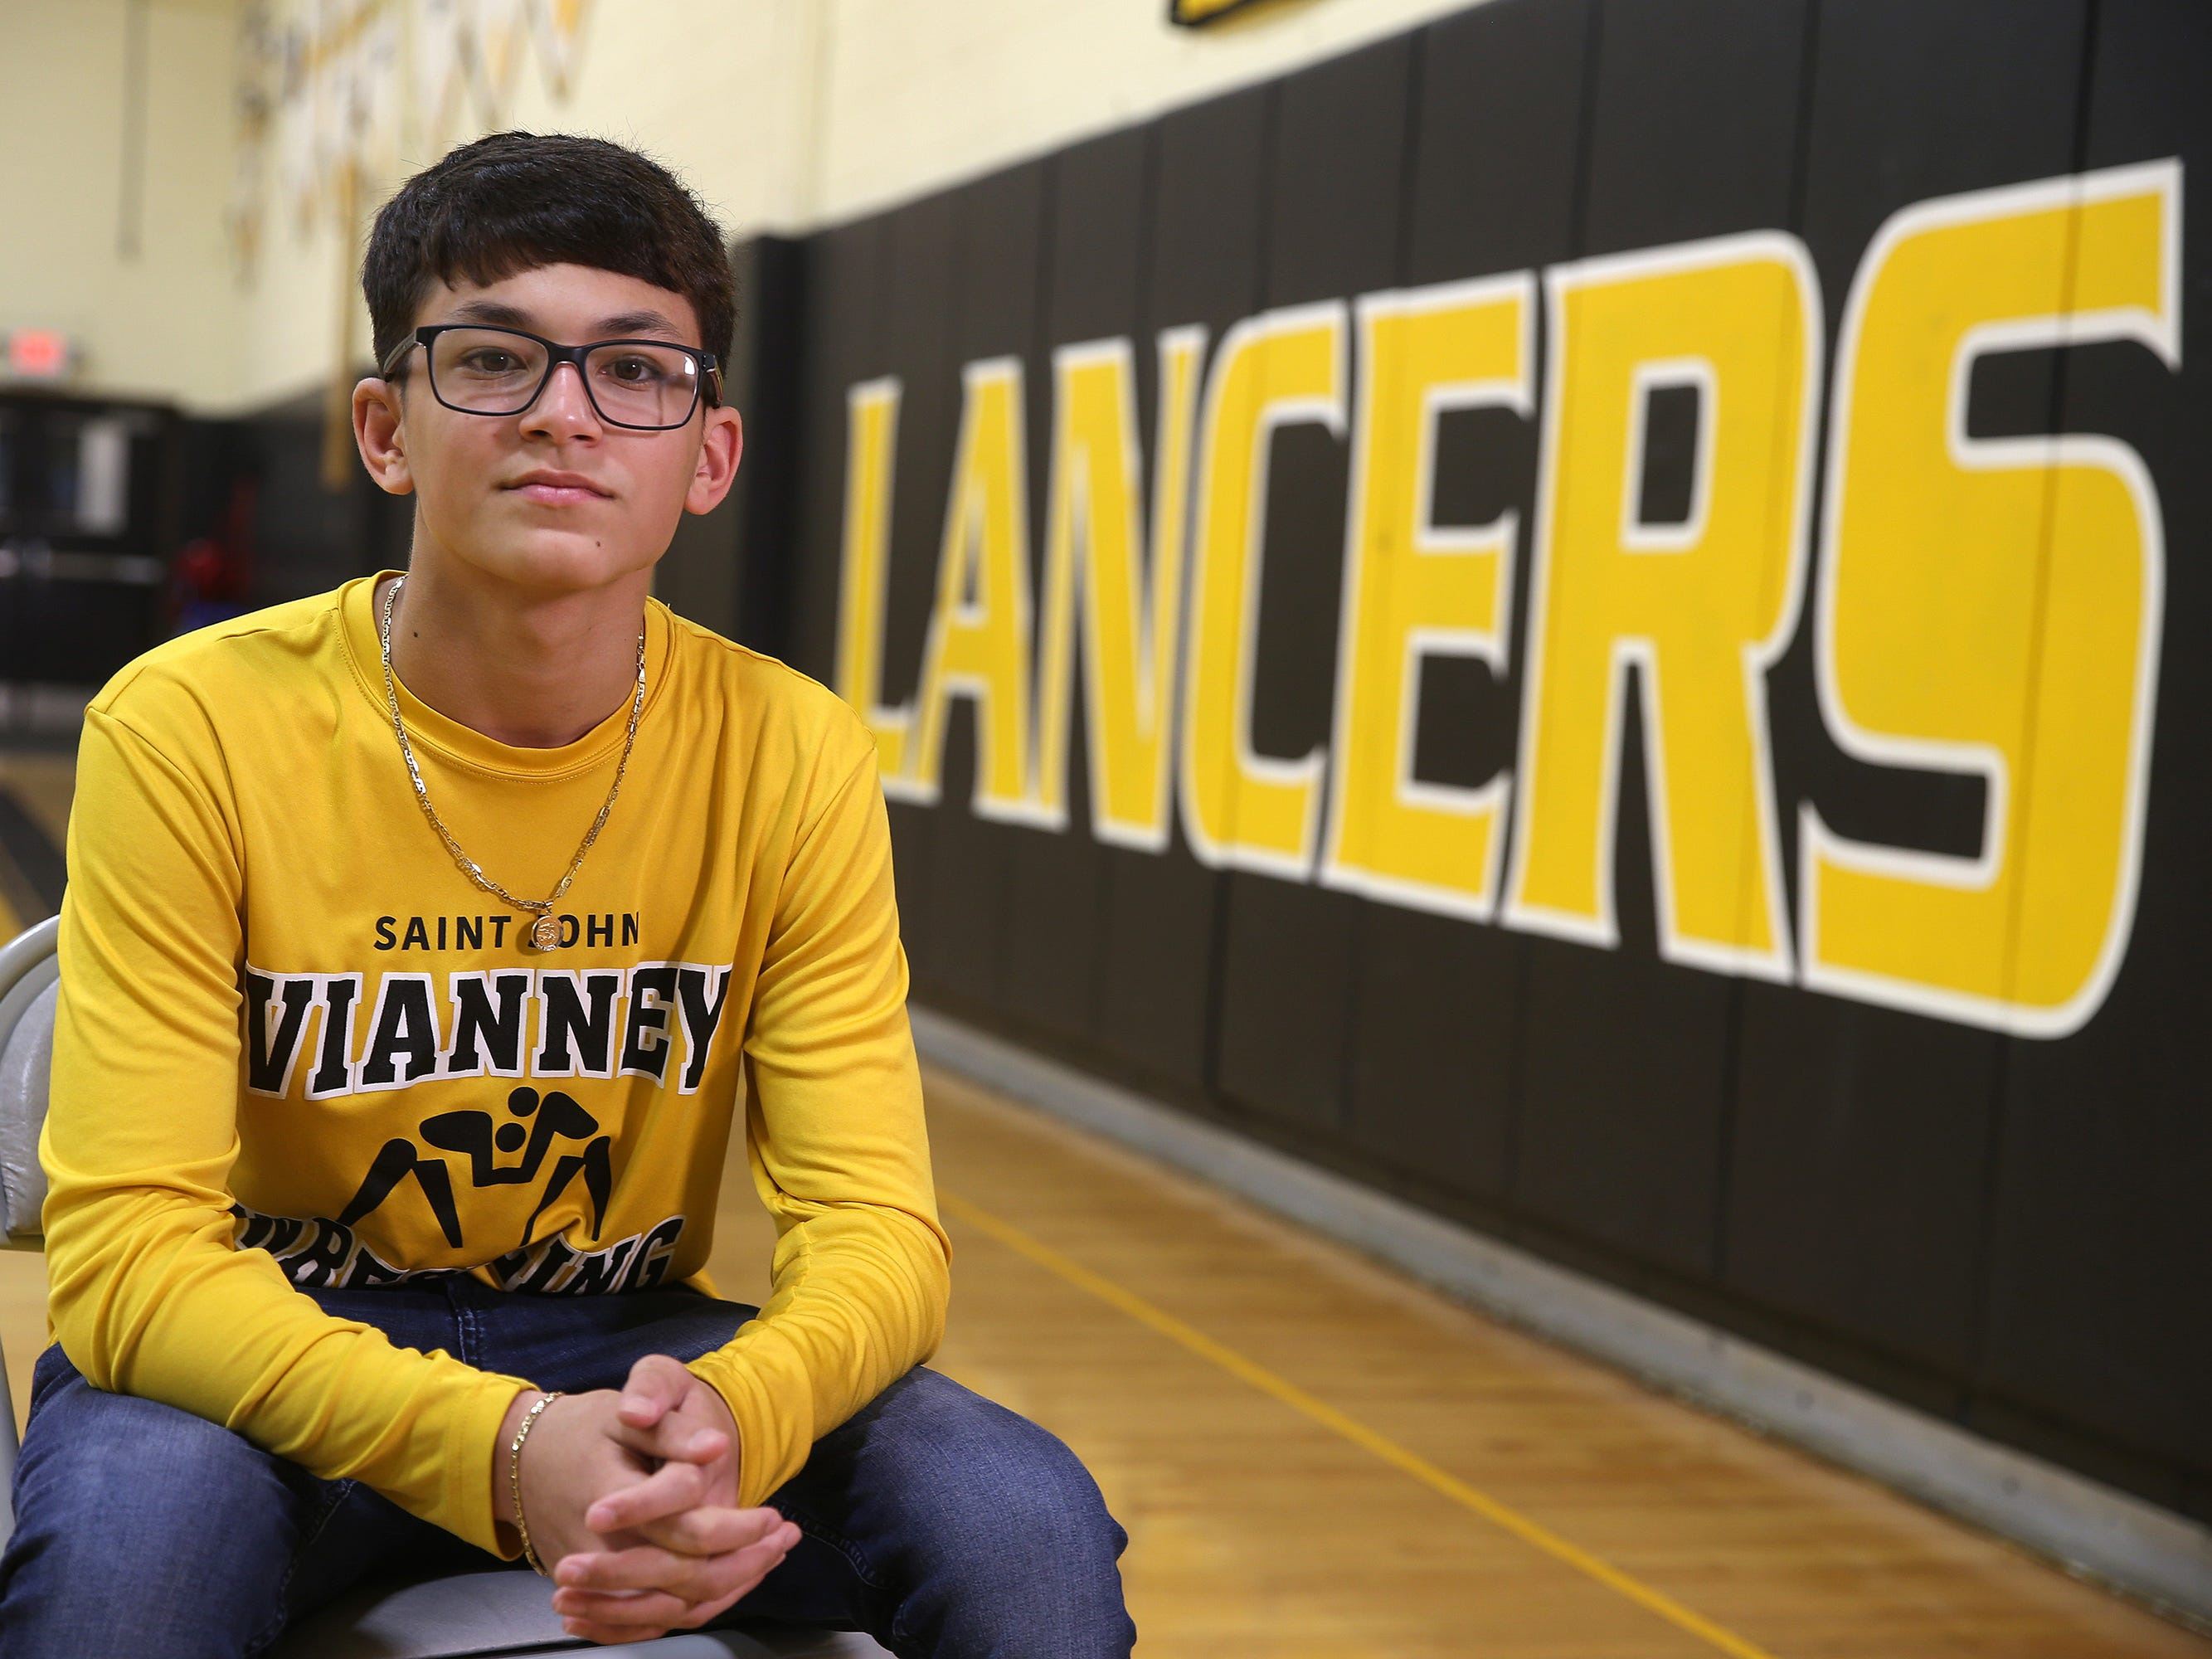 St. John Vianney High School freshman 106-pounder Nico Diaz, who is a nominee for the Courage Award at the Asbury Park Press Sports Awards, tells his story at St. John Vianney High School in Holmdel, NJ Friday, April 19, 2019. Diaz qualified for the NJSIAA Individual Wrestling Championships by finishing third in the NJSIAA Region V Tournament days after his father died suddenly in February. He then came within one win of earning a state medal in the state tournament.